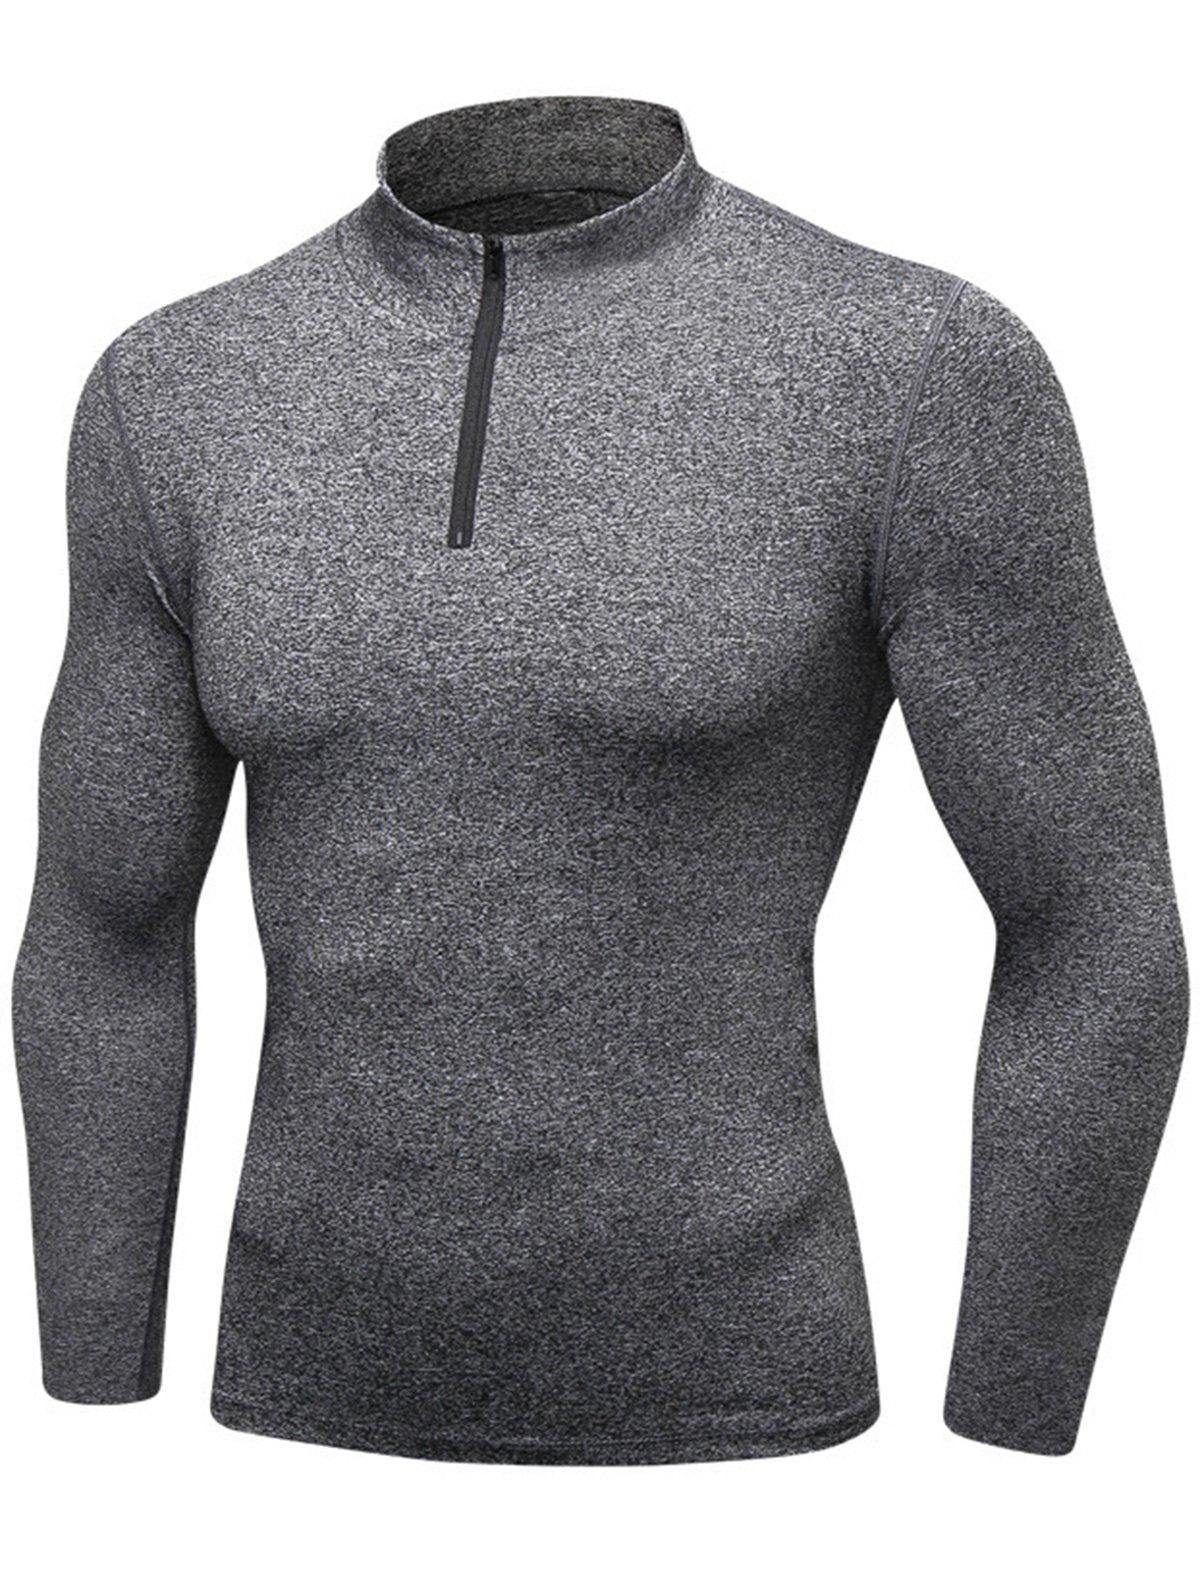 Quick Dry Stand Collar Half Zip Stretchy T-shirt - GRAY 2XL